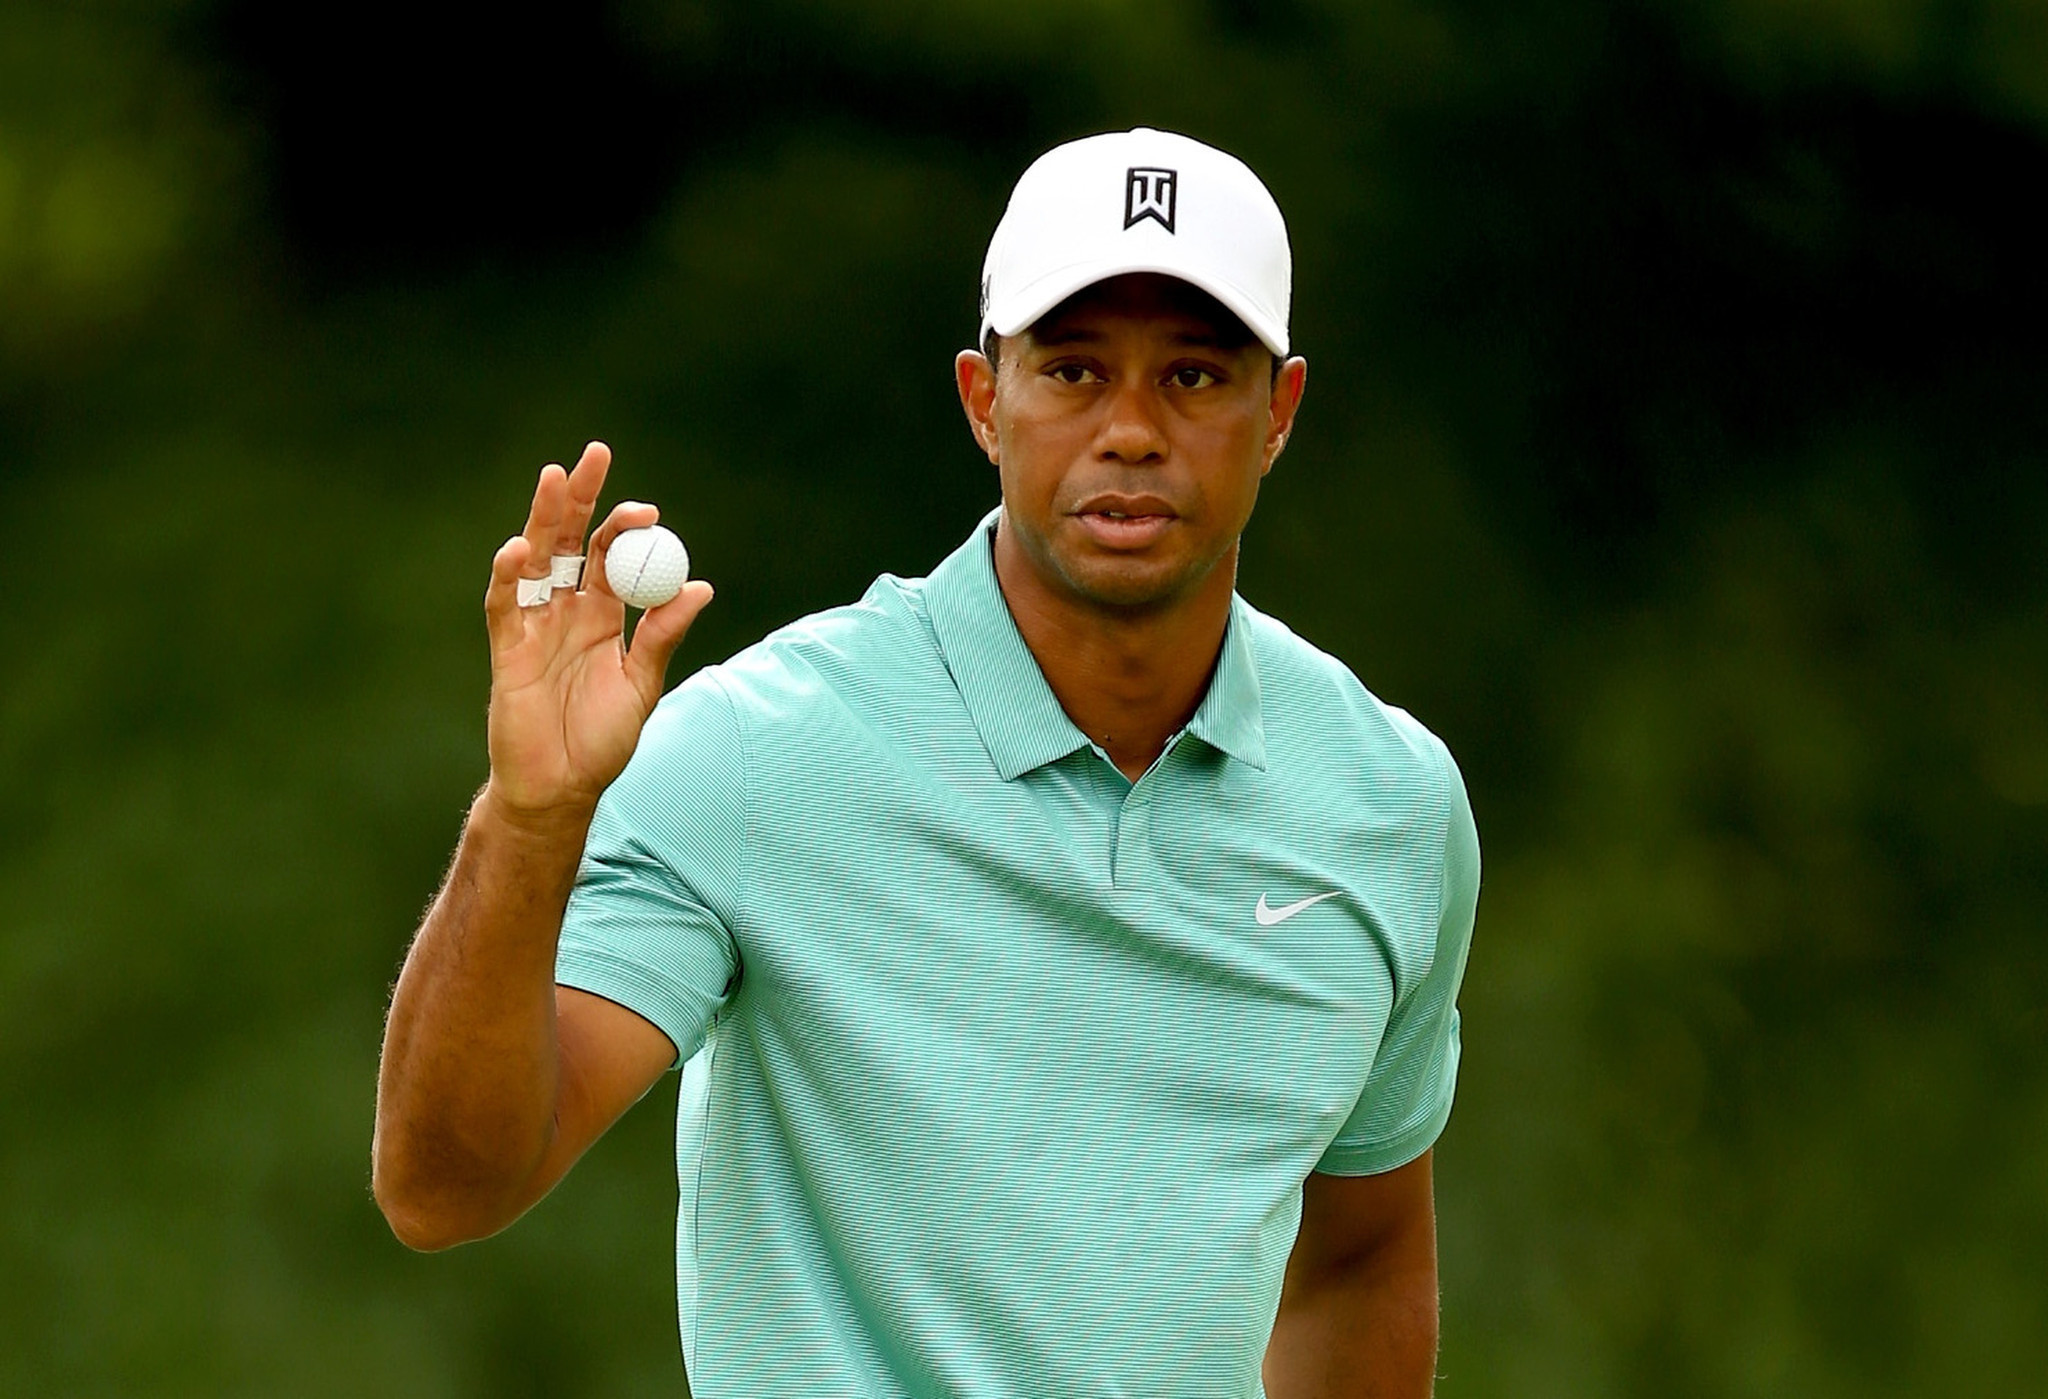 tiger woods wallpapers images photos pictures backgrounds